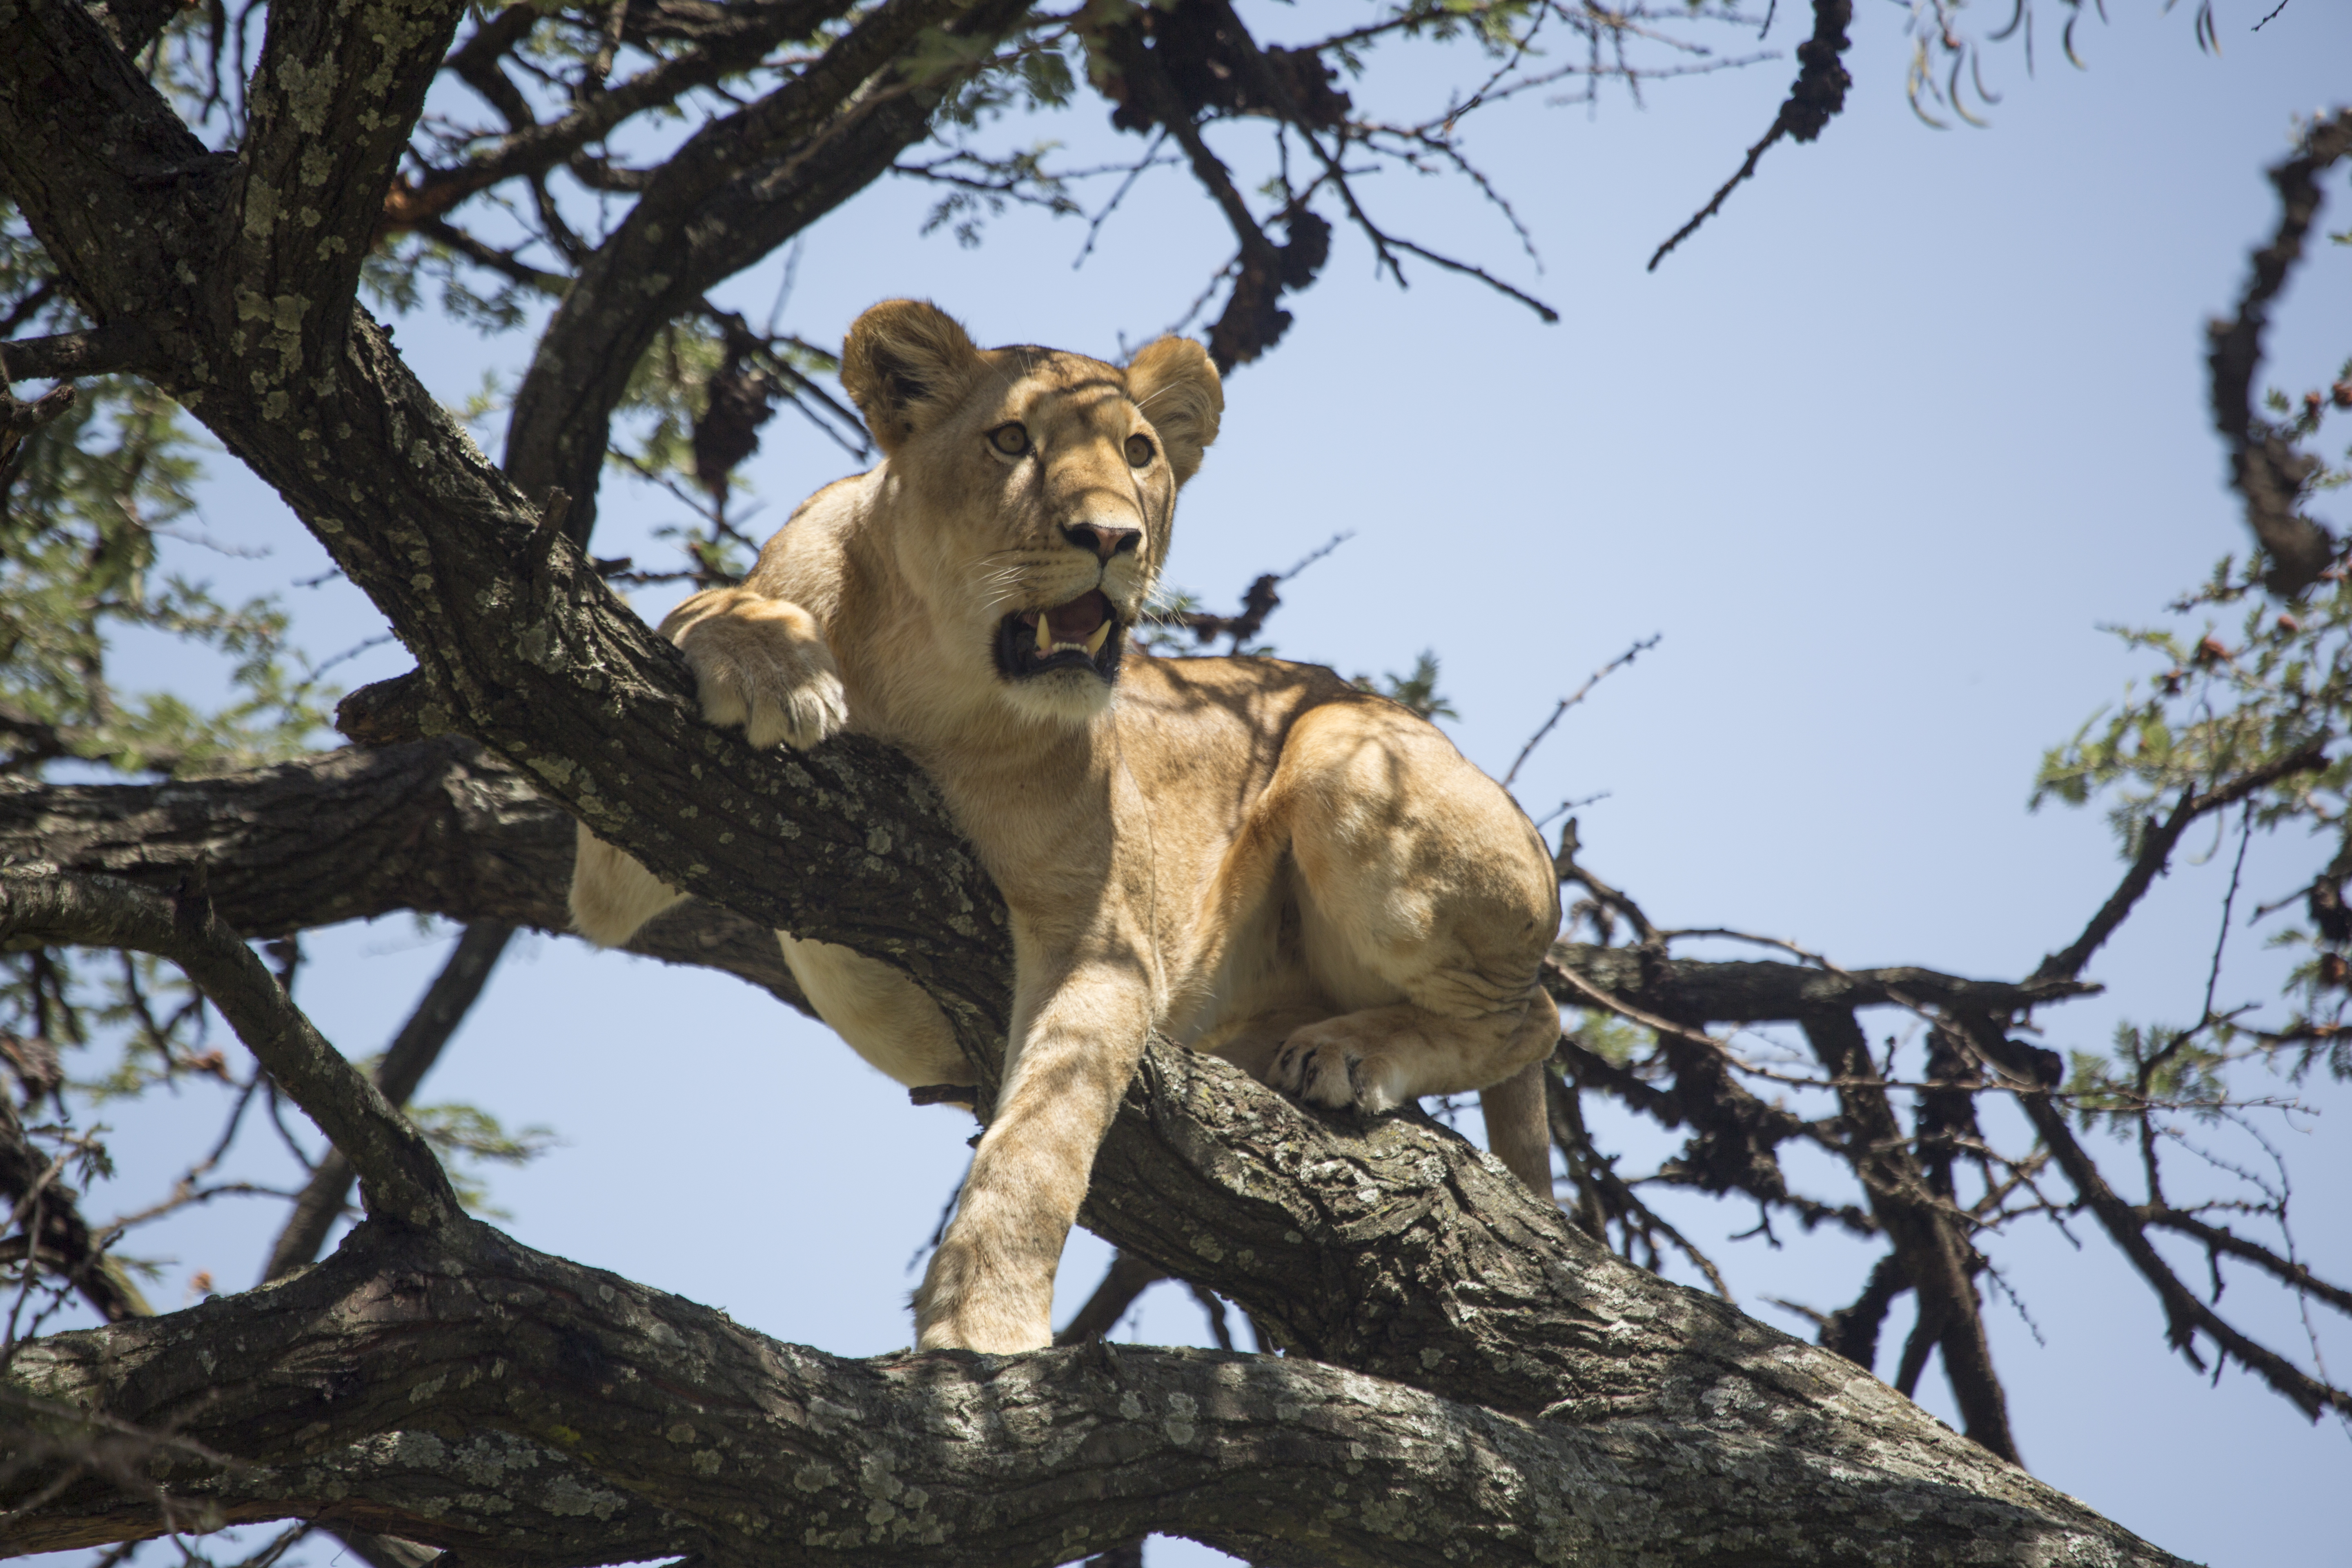 Lioness-in-a-tree-Rekero-6R1A6704_highre